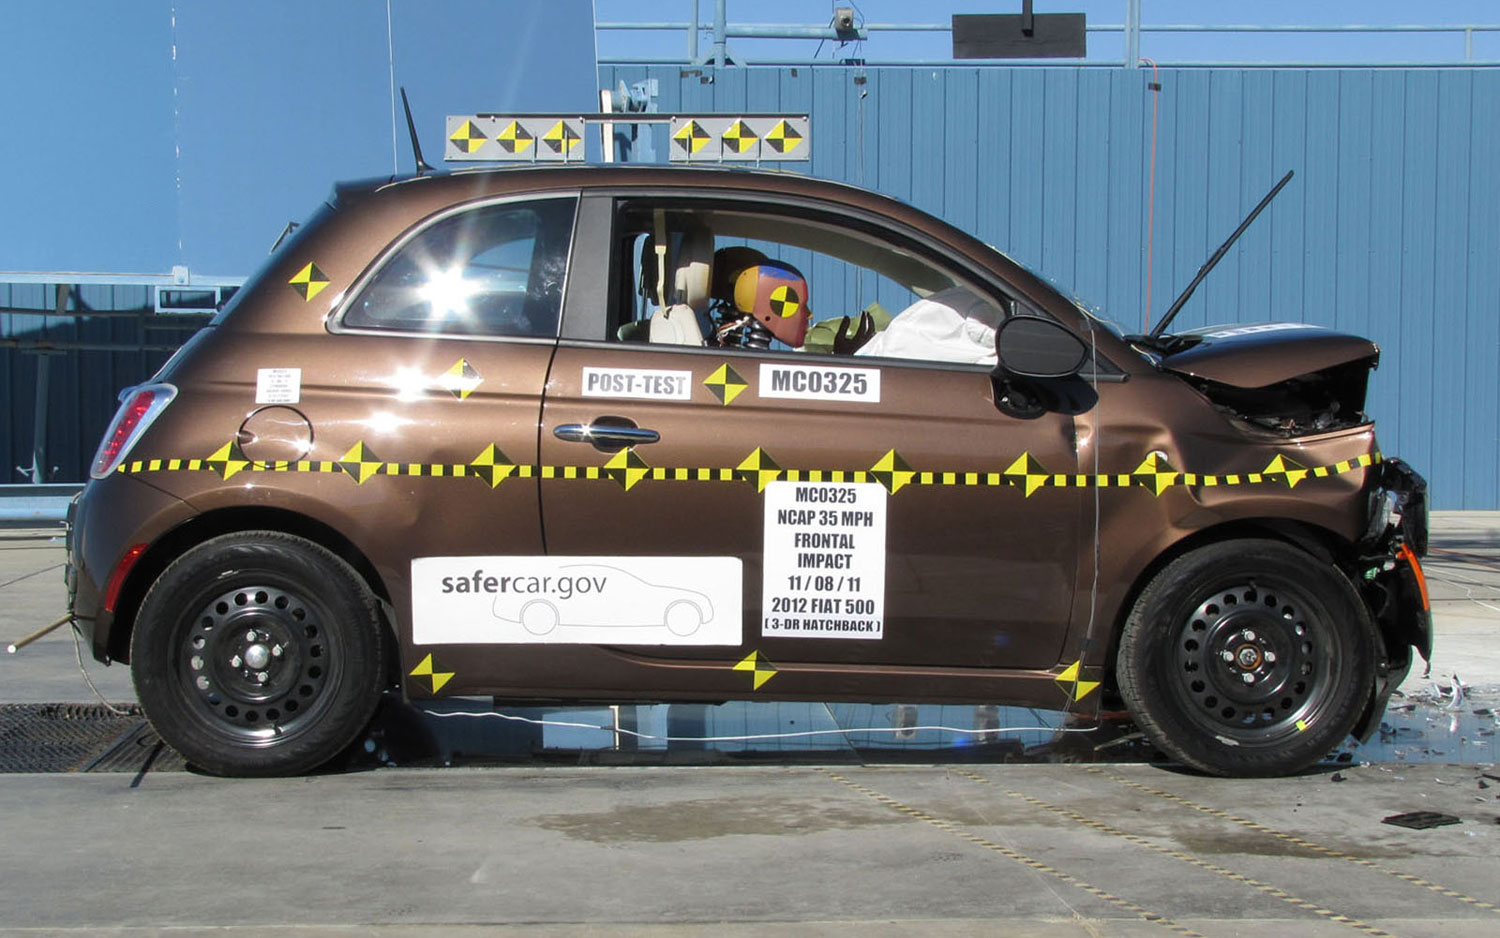 UPDATE: NHTSA Gives 2012 Fiat 500 Three-Star Safety Rating, Contrary